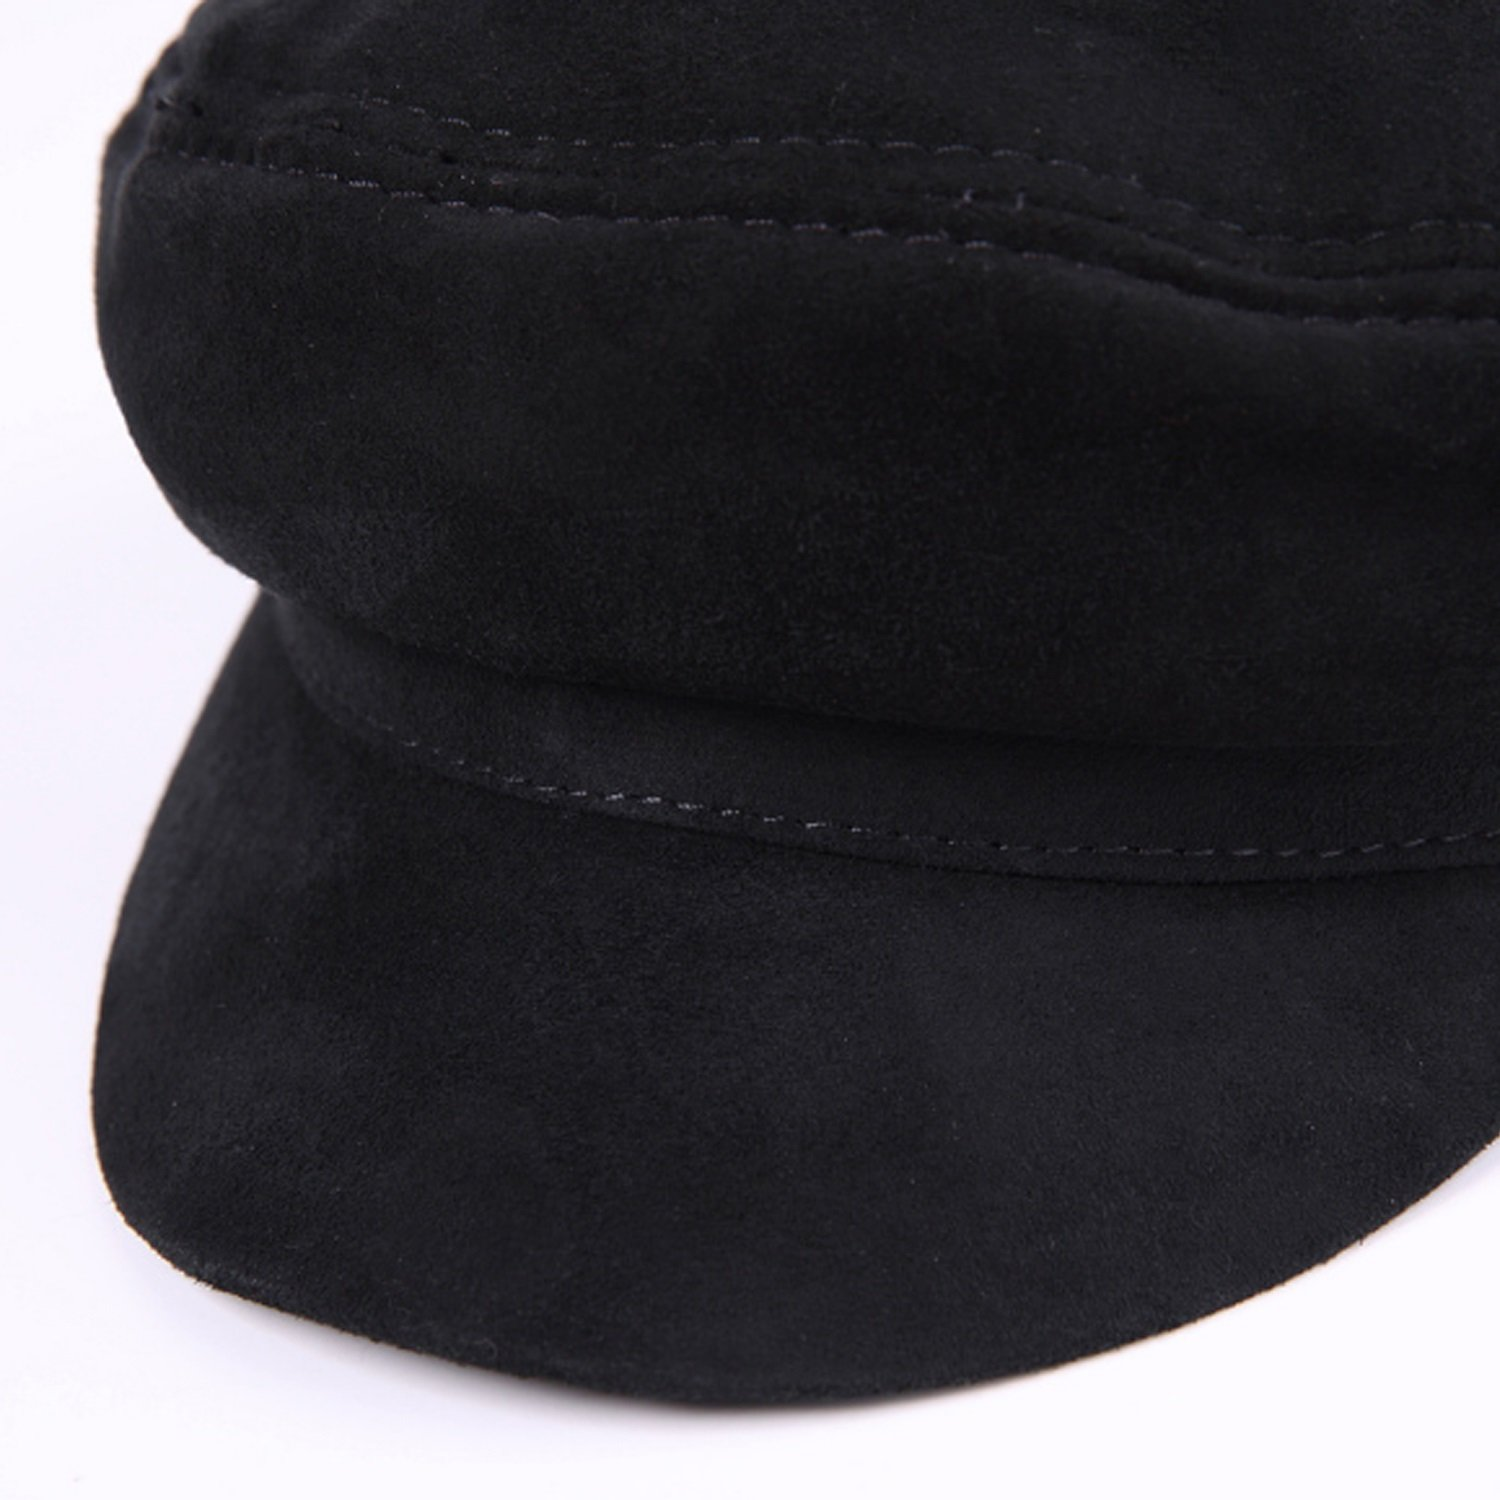 2018 Spring Fall Winter 2 Layers Cowhide Leather Hat Gender Leisure Leather Hat Flat Cap,Leisure Fashion Cap. Color : Black, Size : L Happy-L Hat